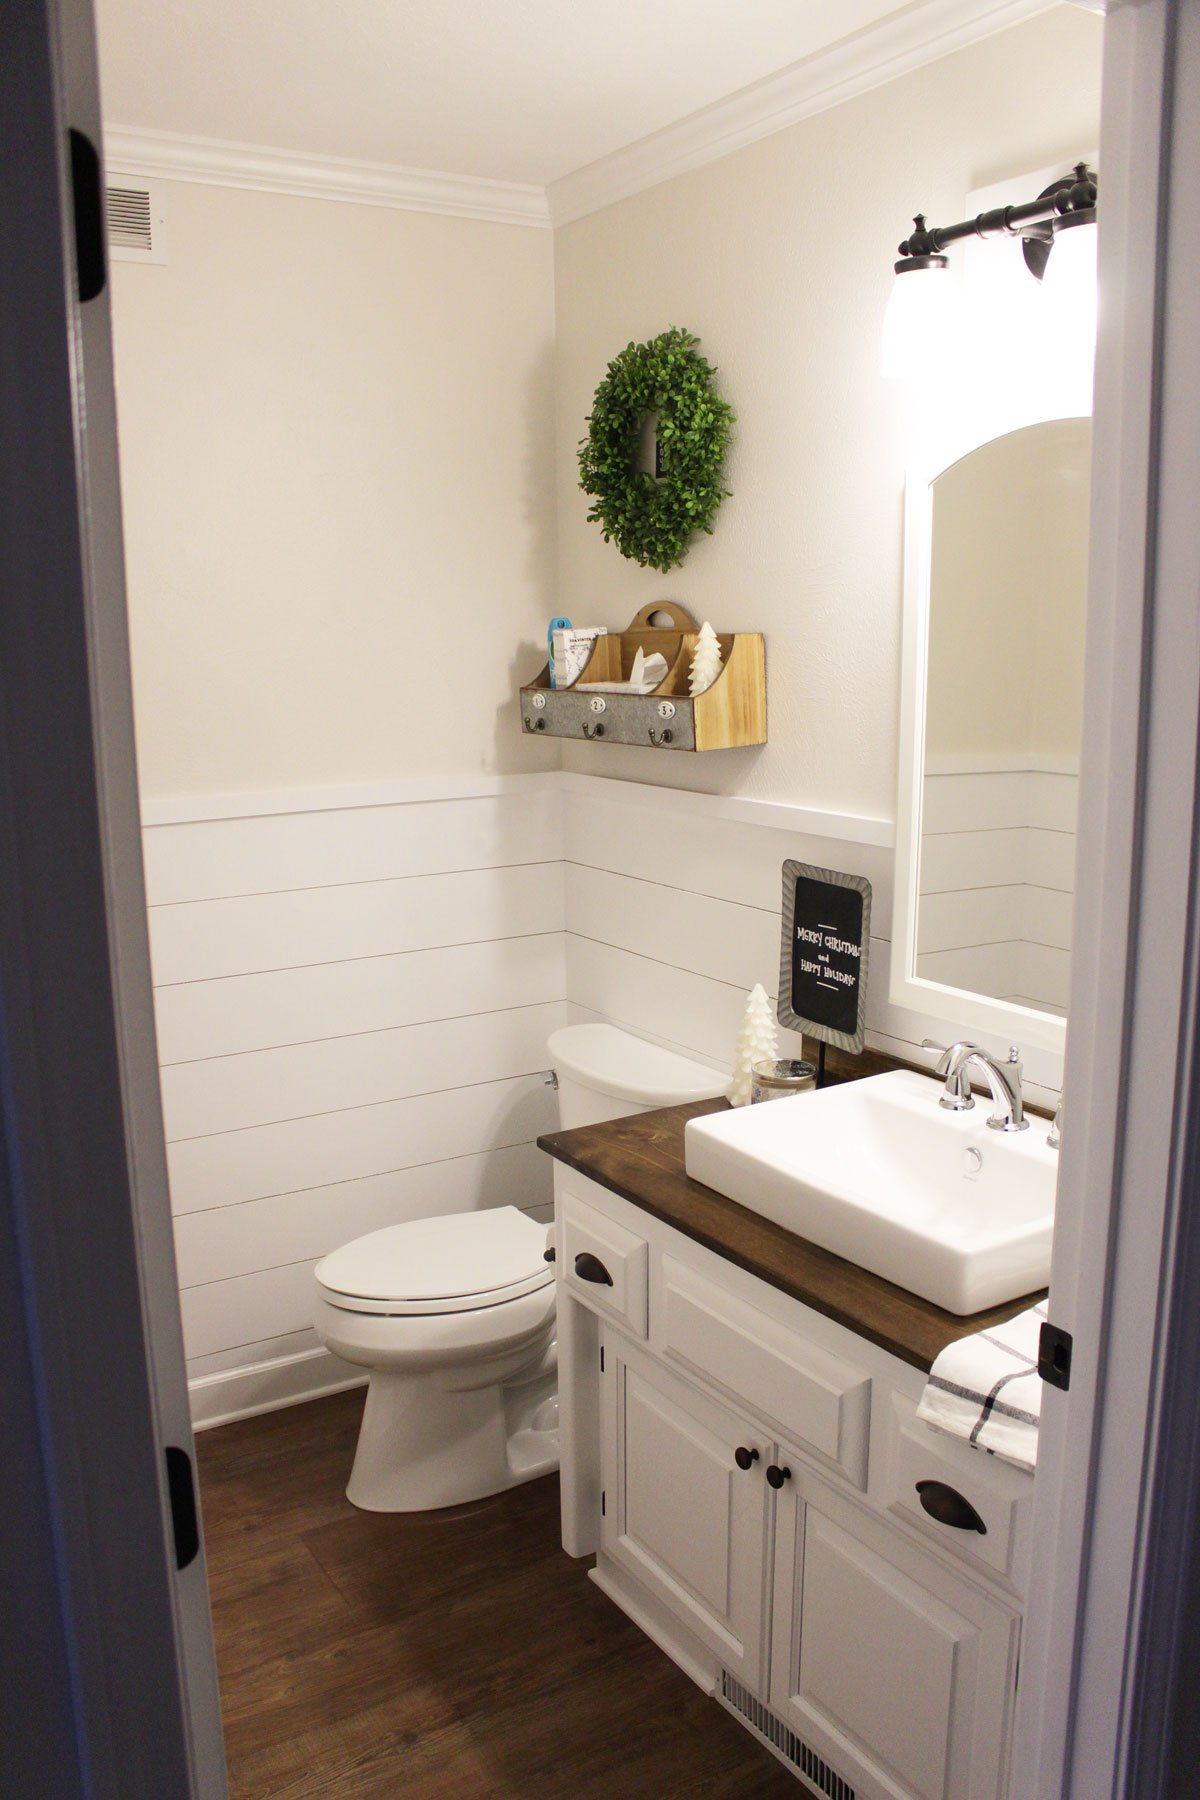 Shiplap Wainscoting in Our Half Bathroom • What Karly Said